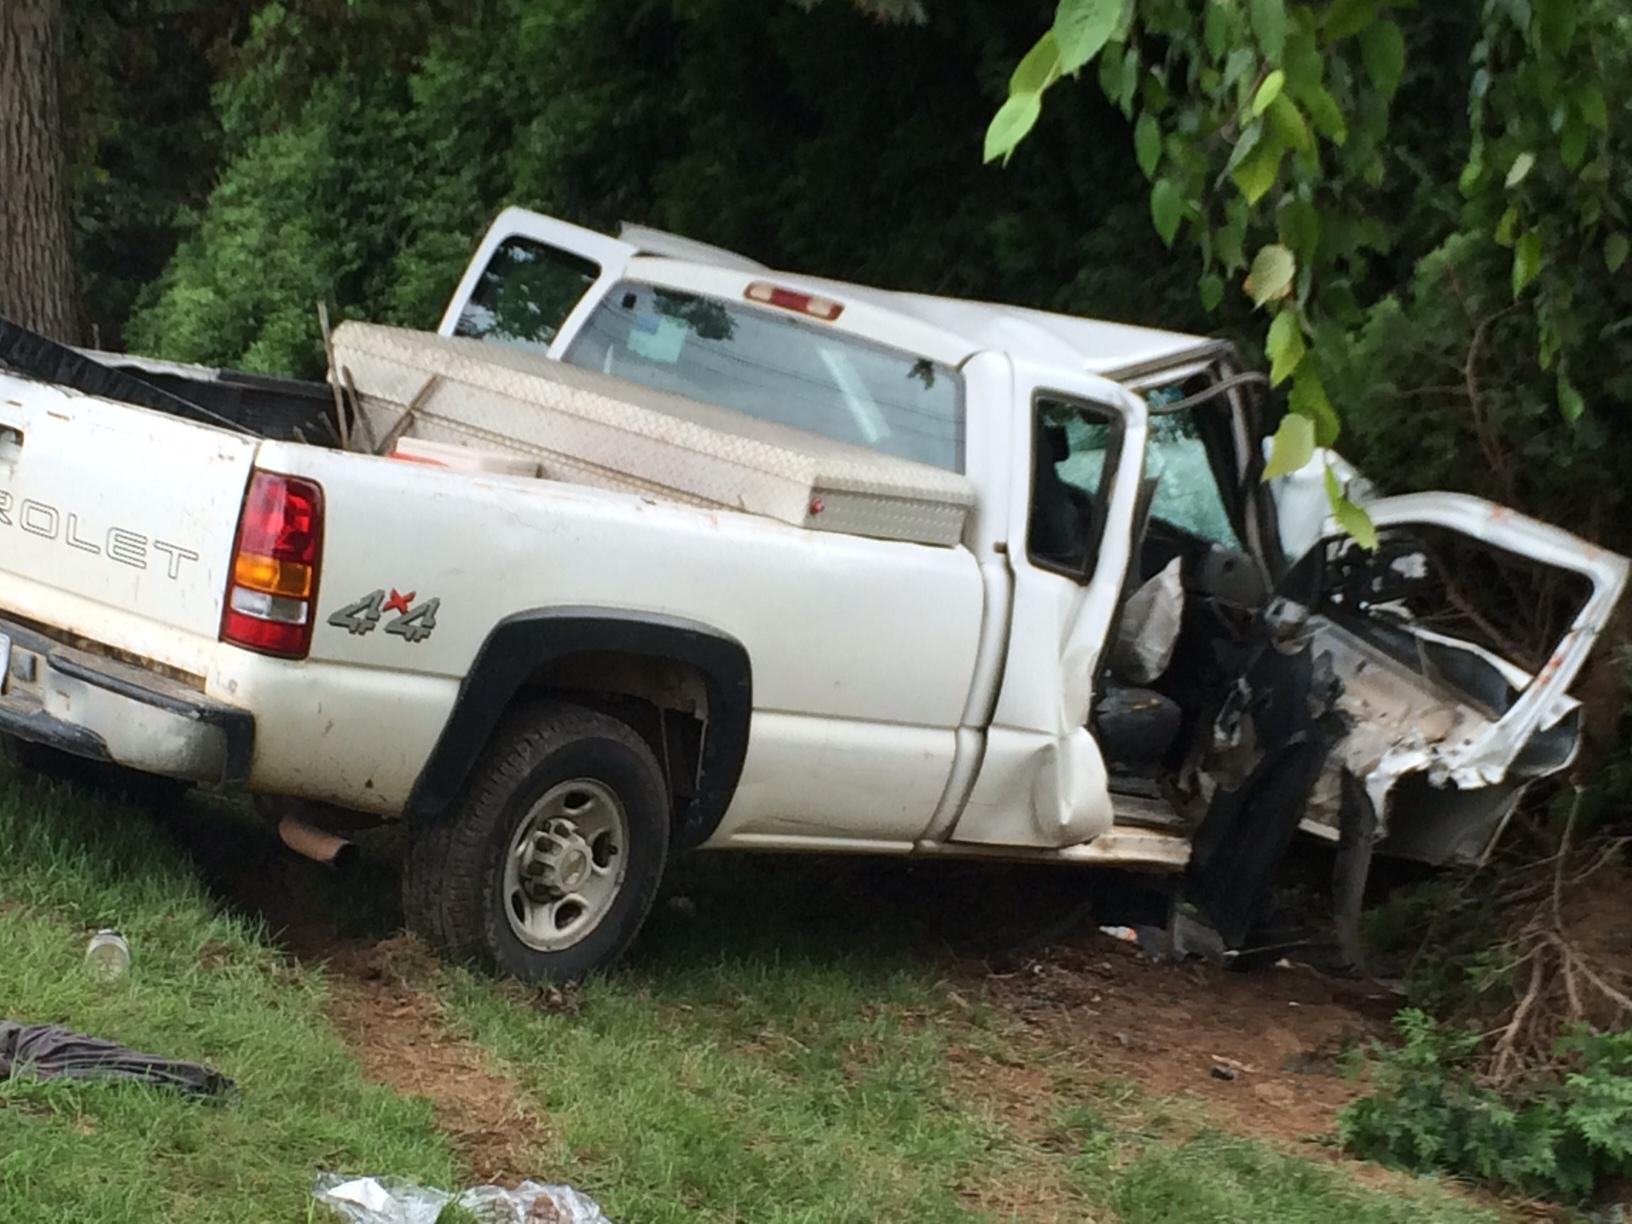 The single-vehicle wreck happened just before 10 a.m. Thursday on Butler Bridge Road at Yadkin Road. (Photo credit: WLOS Staff)